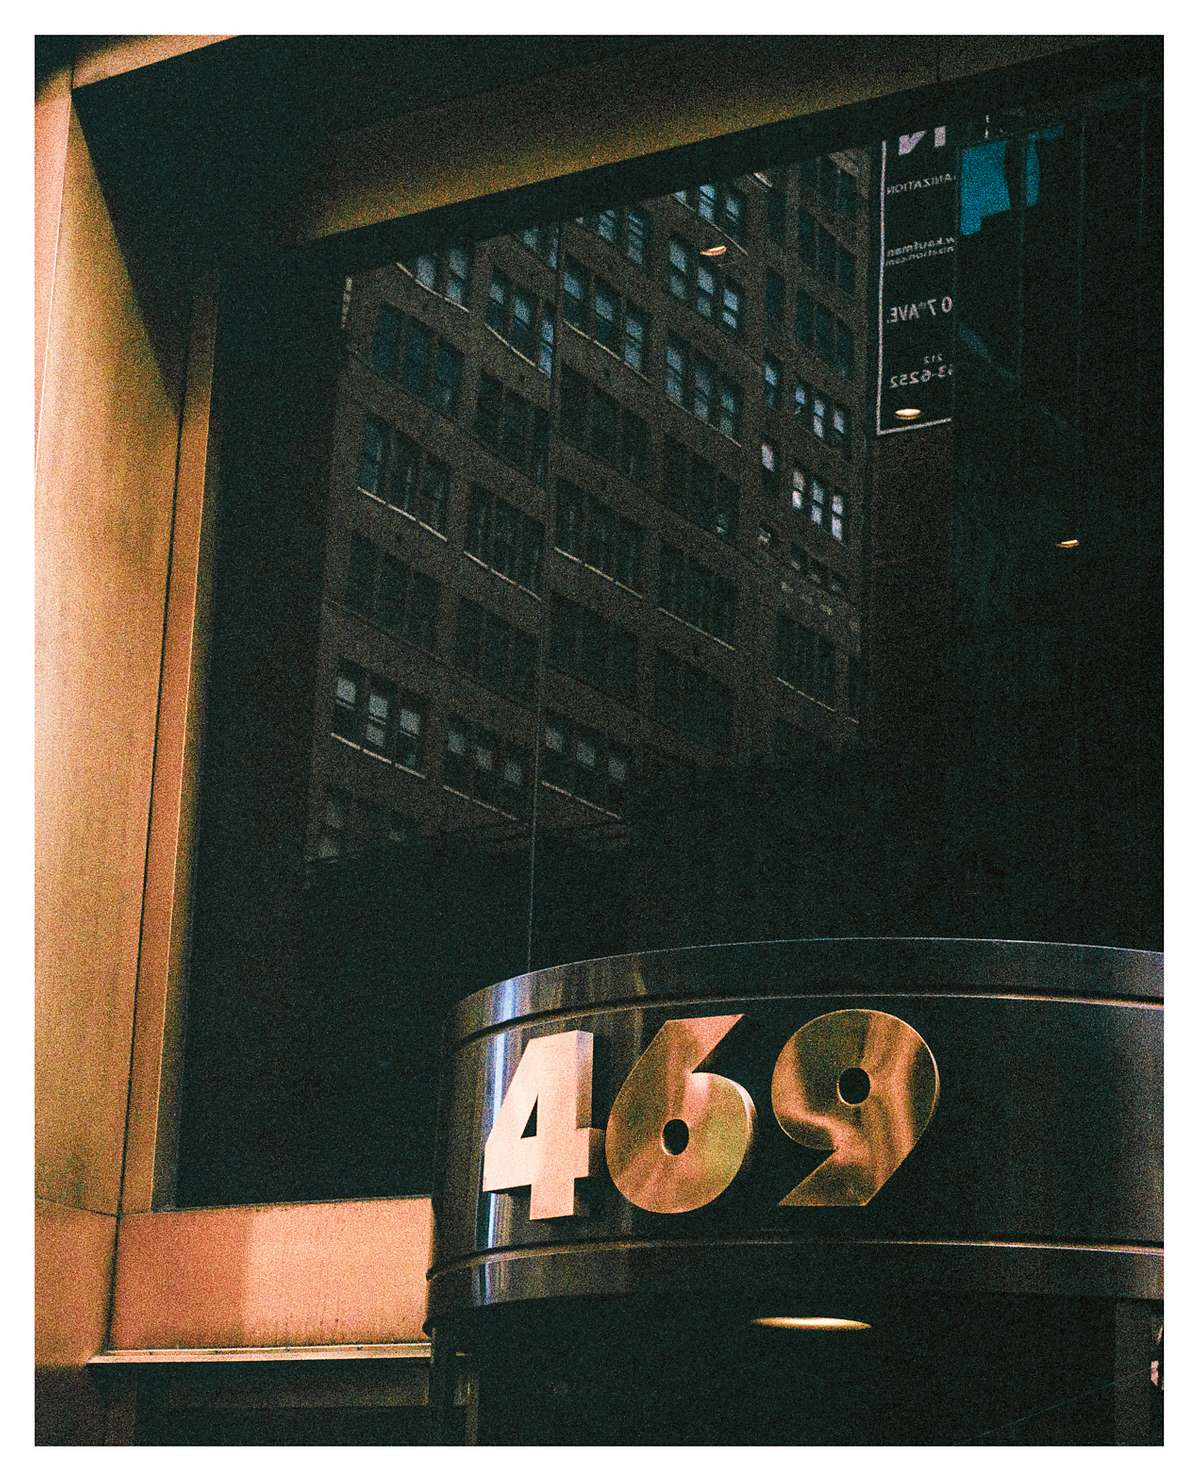 '469' - 12.1 x 15 inches - £50